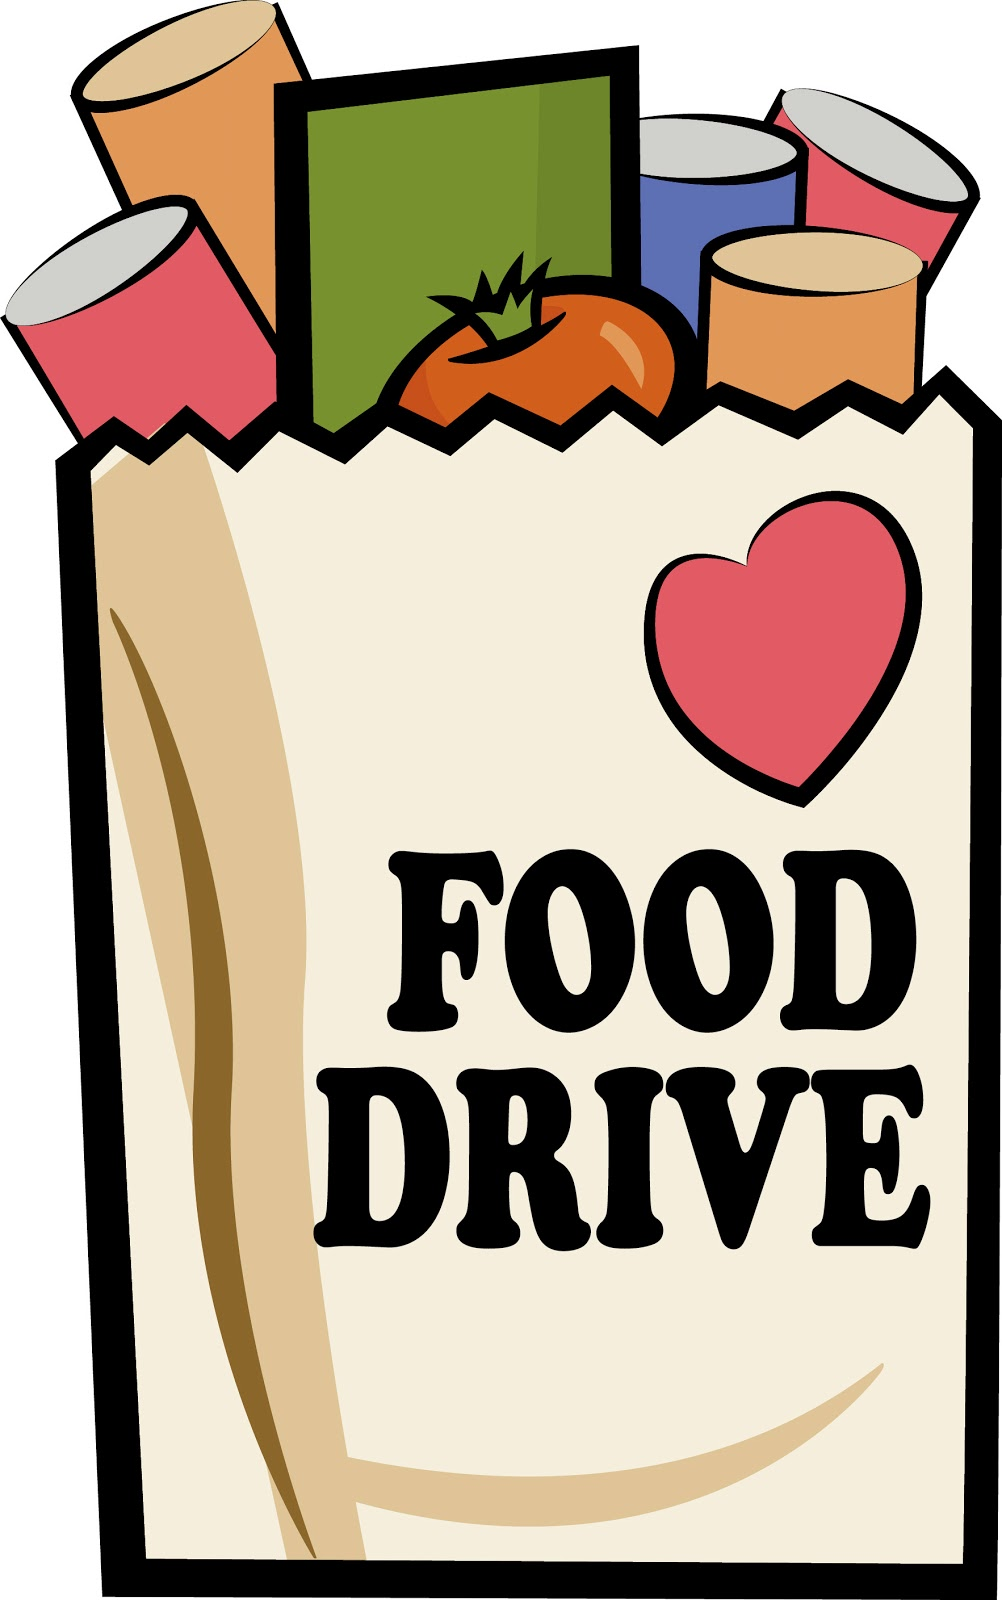 12 Food Drive Graphics Images